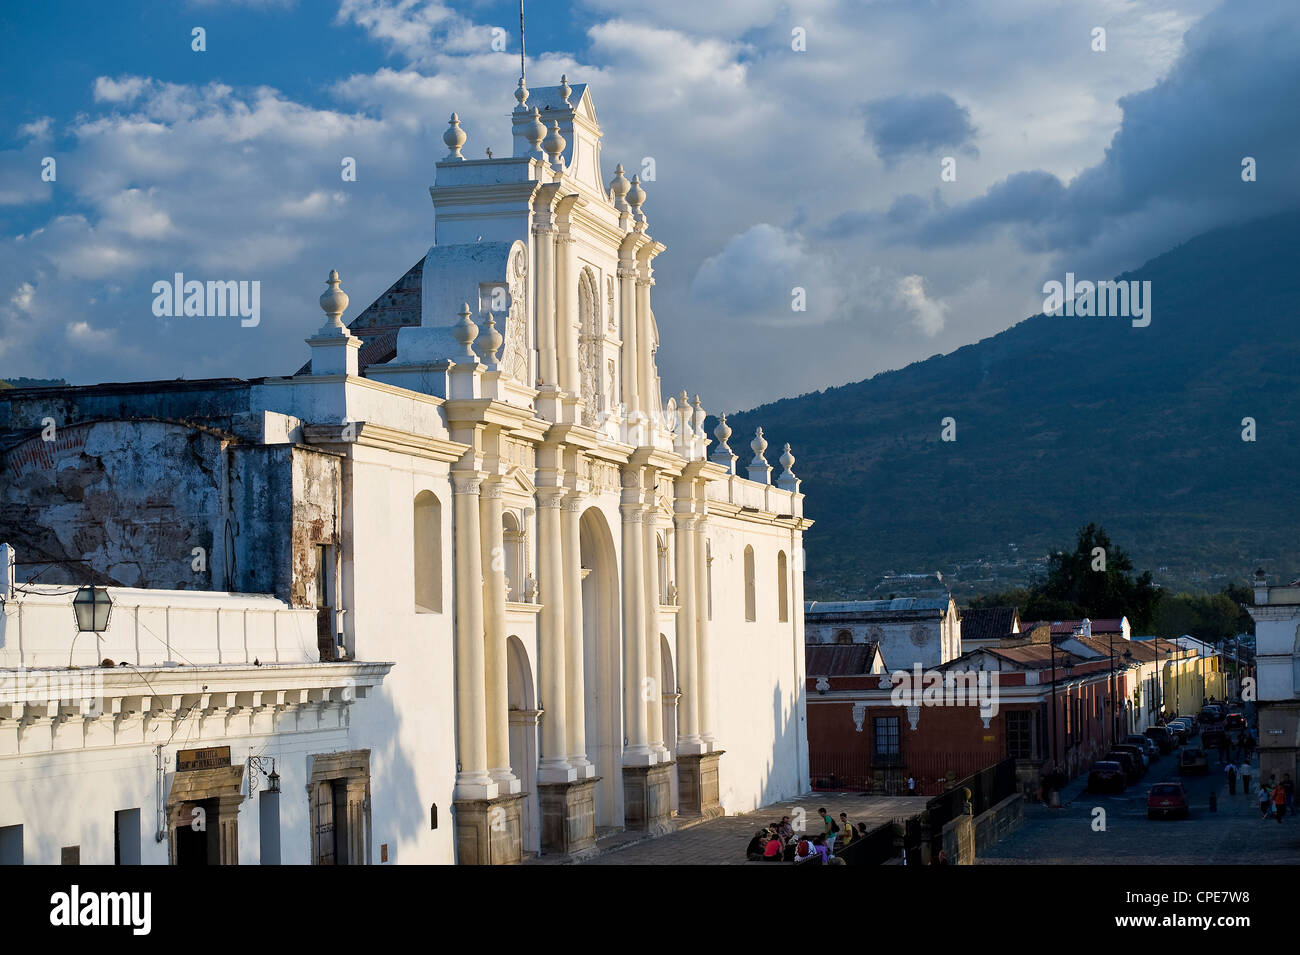 Cathedral of San Jose, UNESCO World Heritage Site, Antigua, Guatemala, Central America - Stock Image